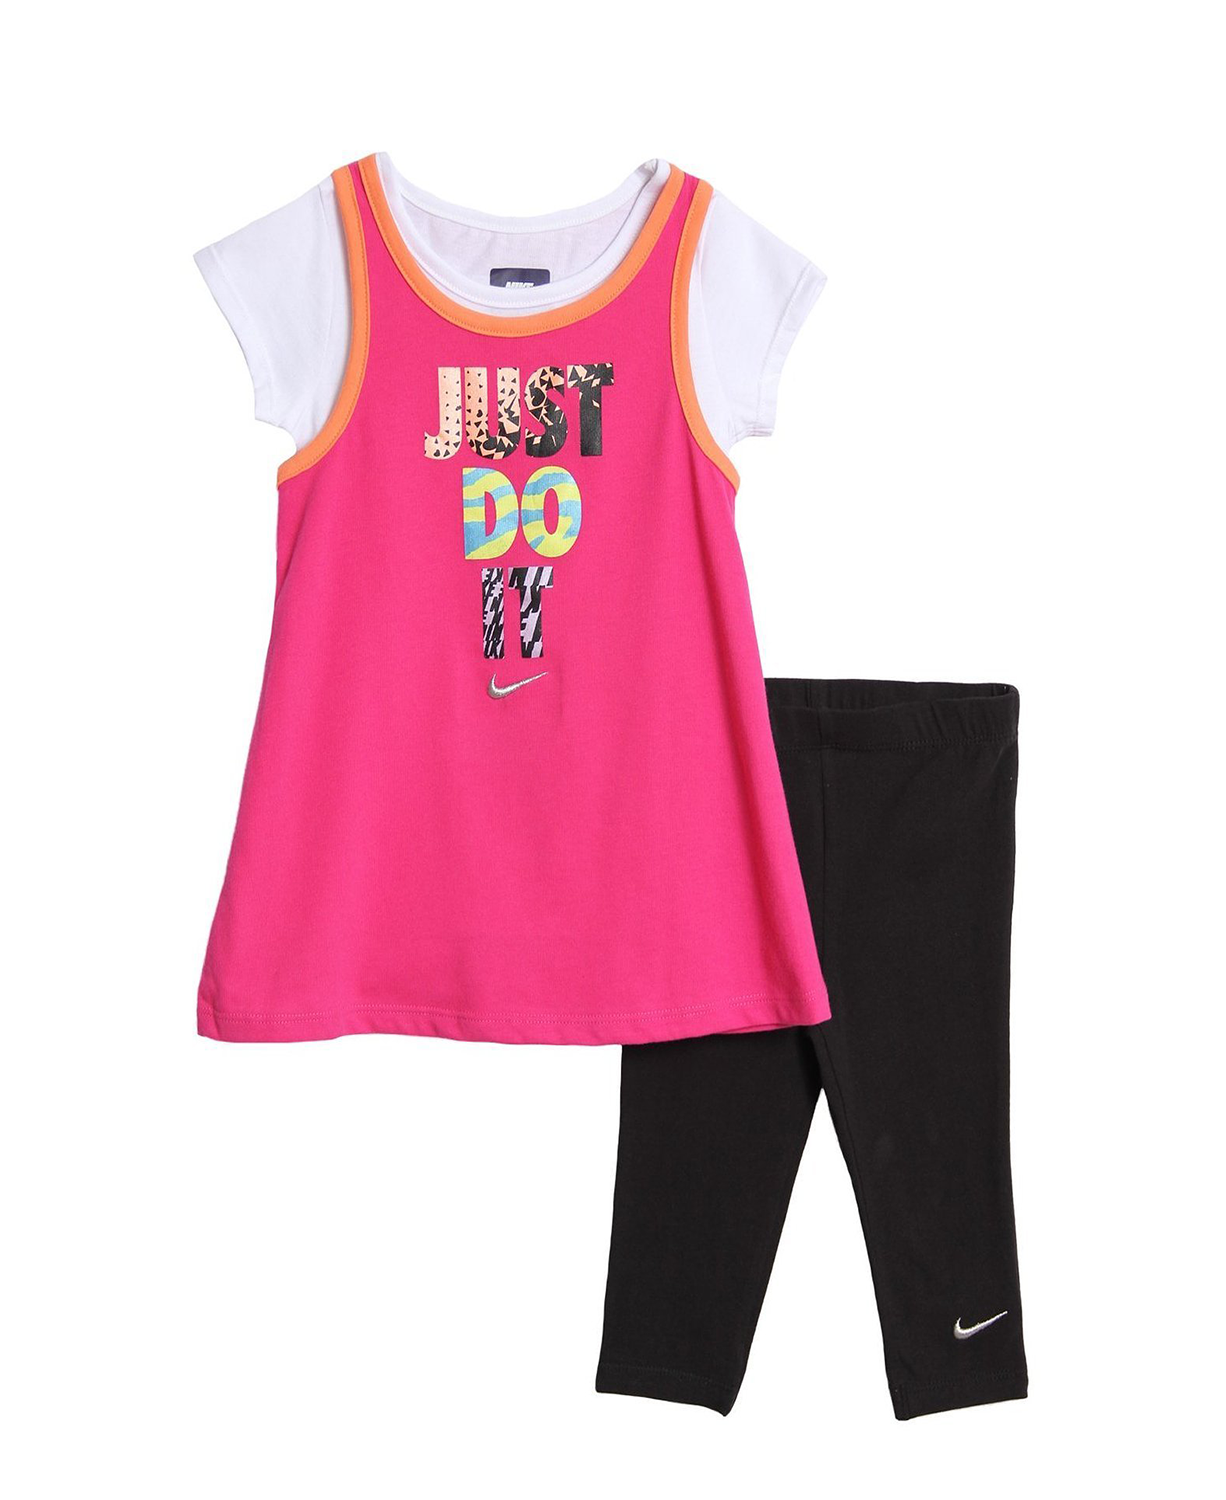 New Nike Baby and Toddler Girls' 2 Piece Pink T-shirt Black ...